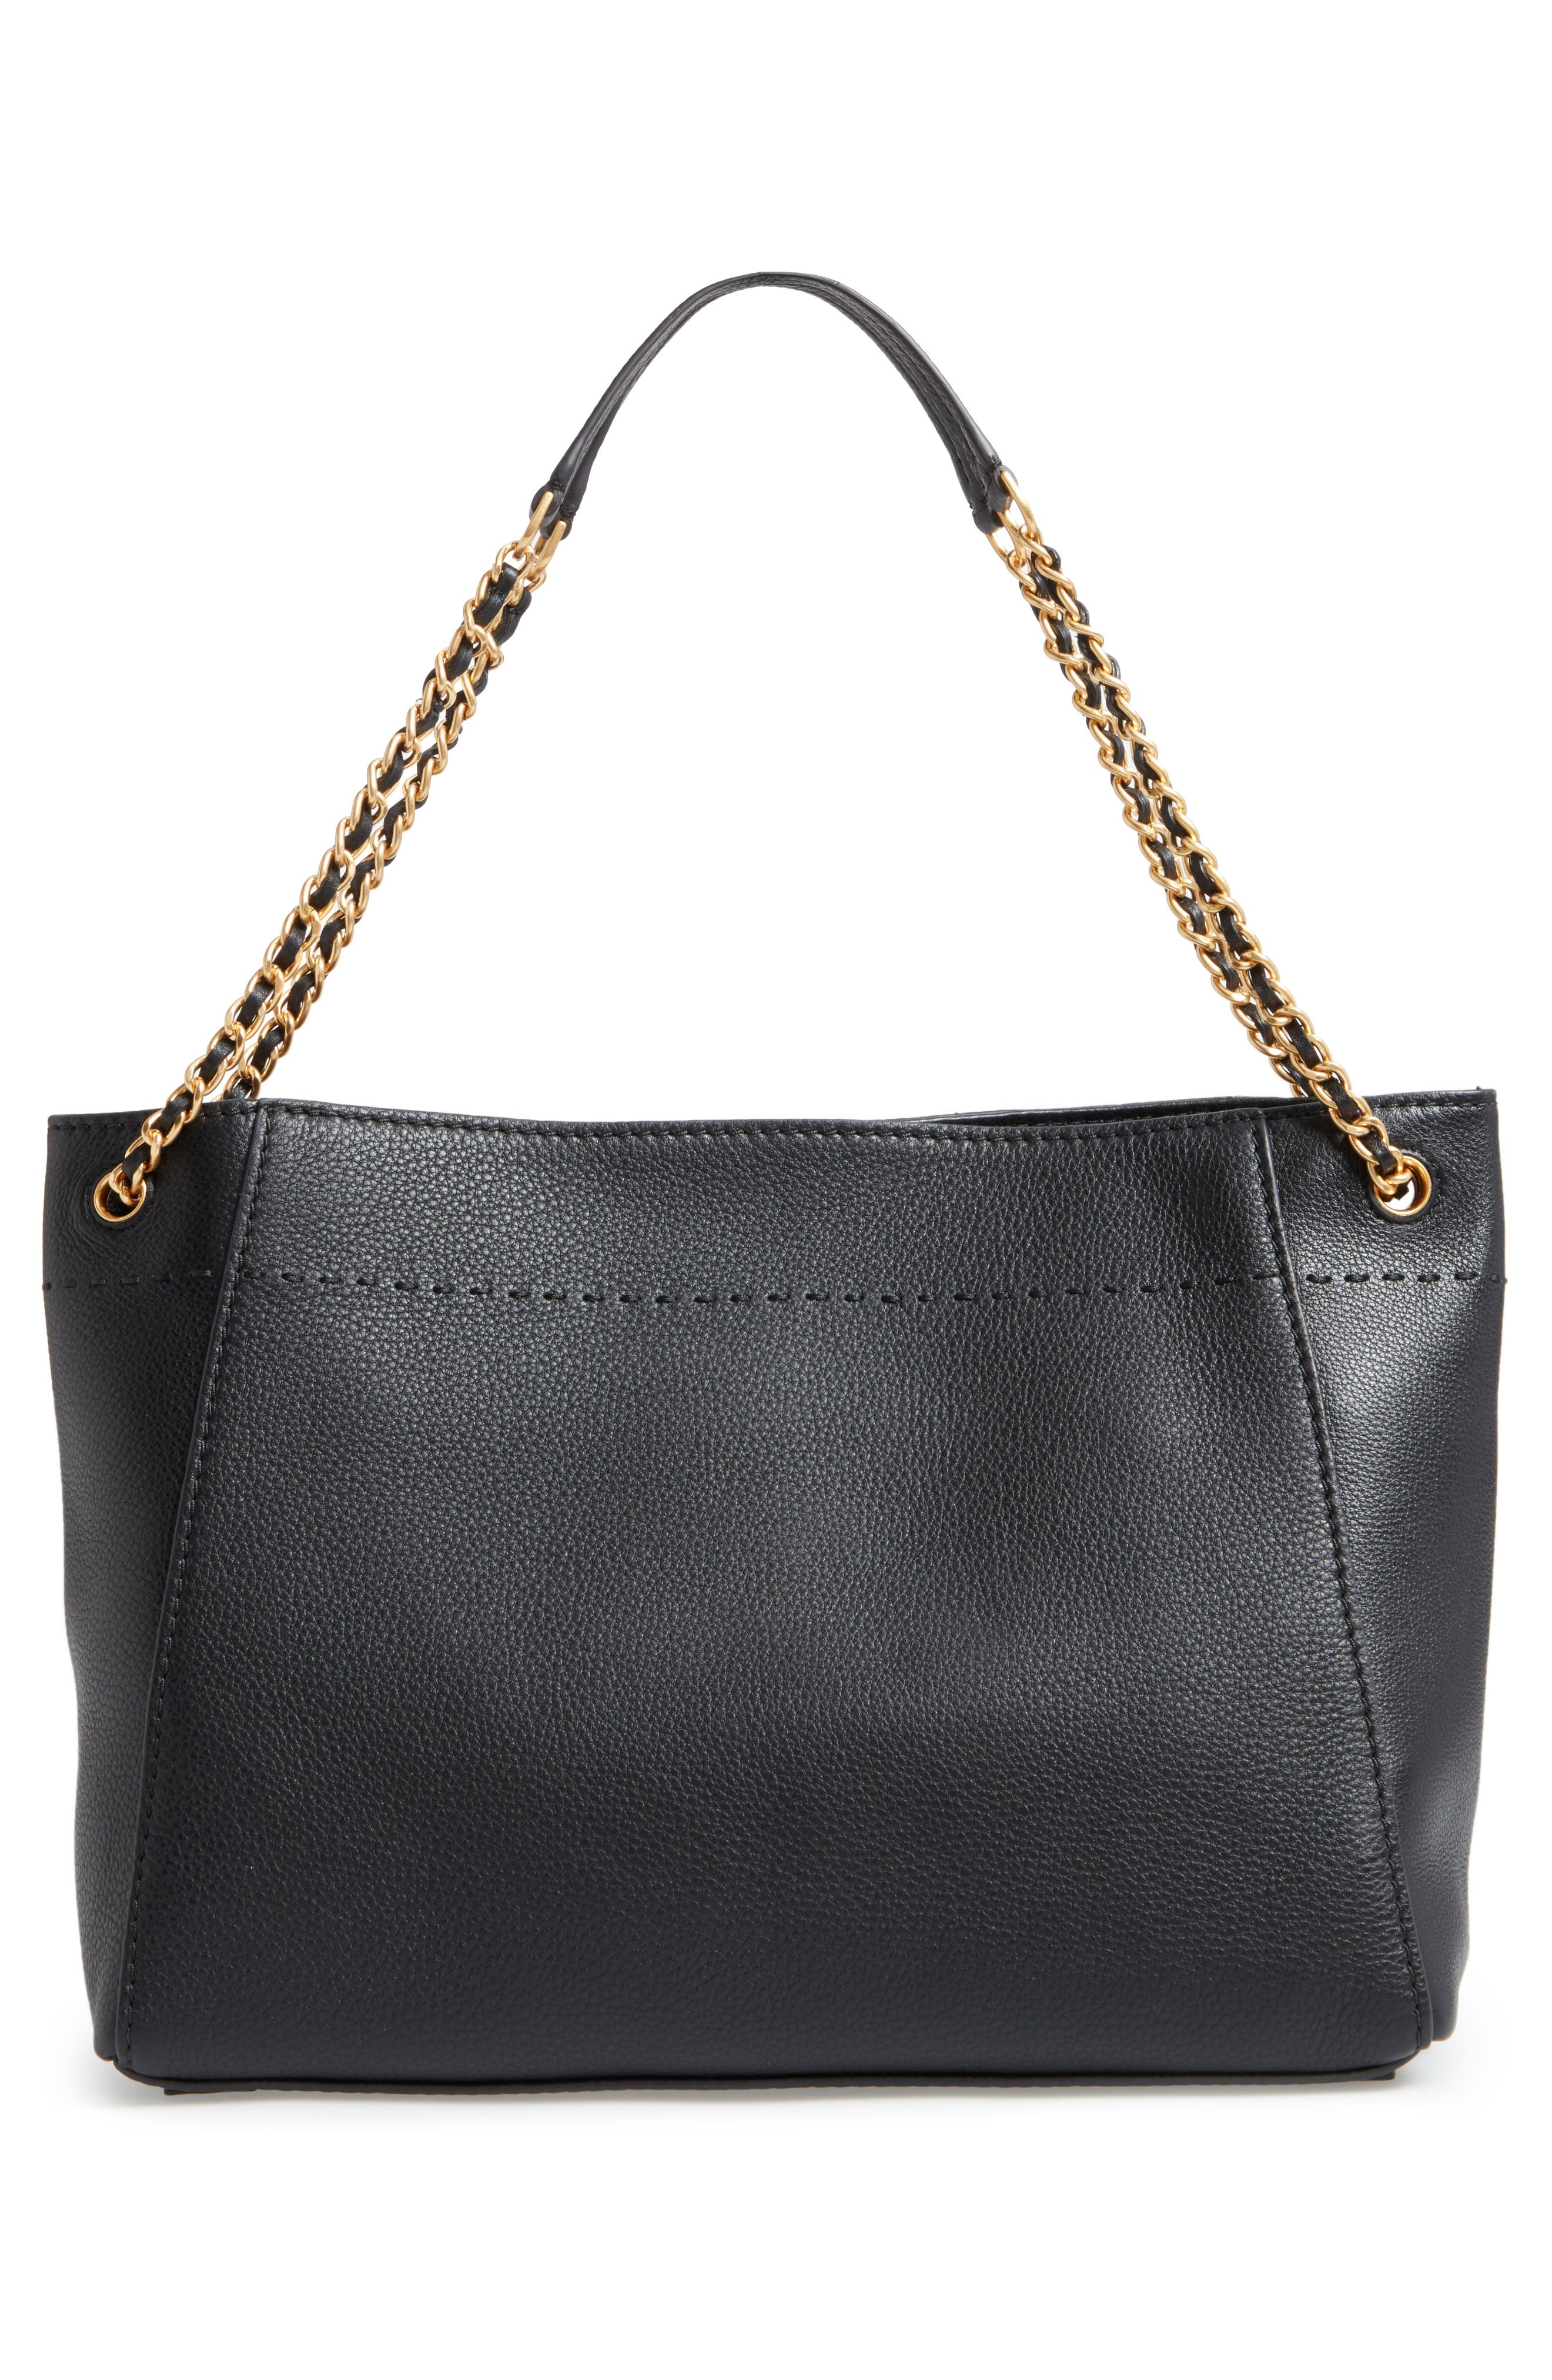 TORY BURCH, McGraw Slouchy Leather Shoulder Bag, Alternate thumbnail 3, color, 001